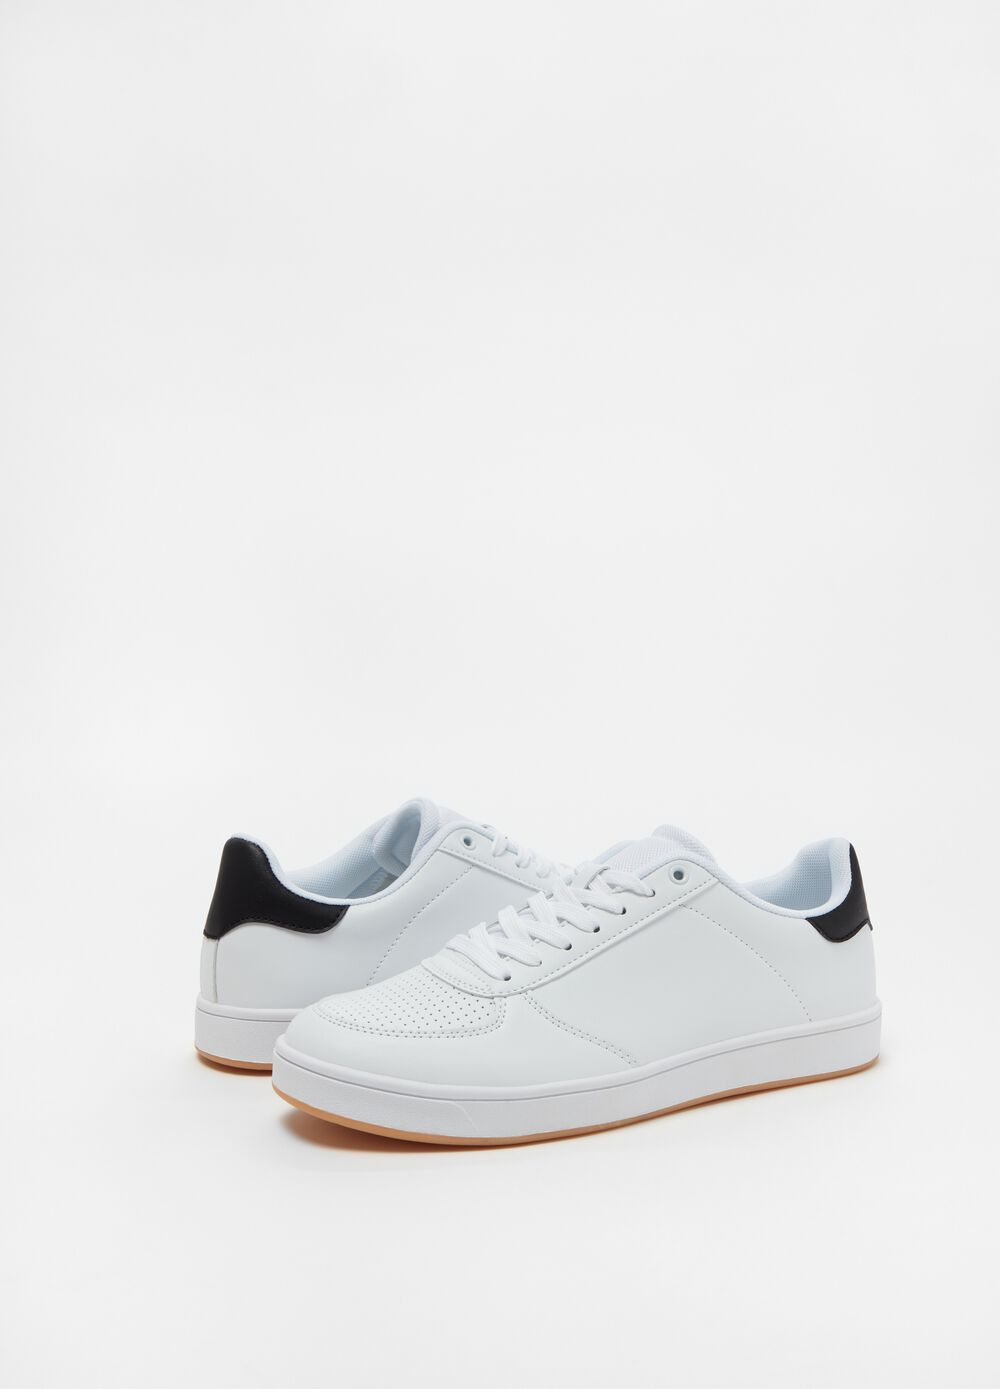 Solid colour sneakers with low sole